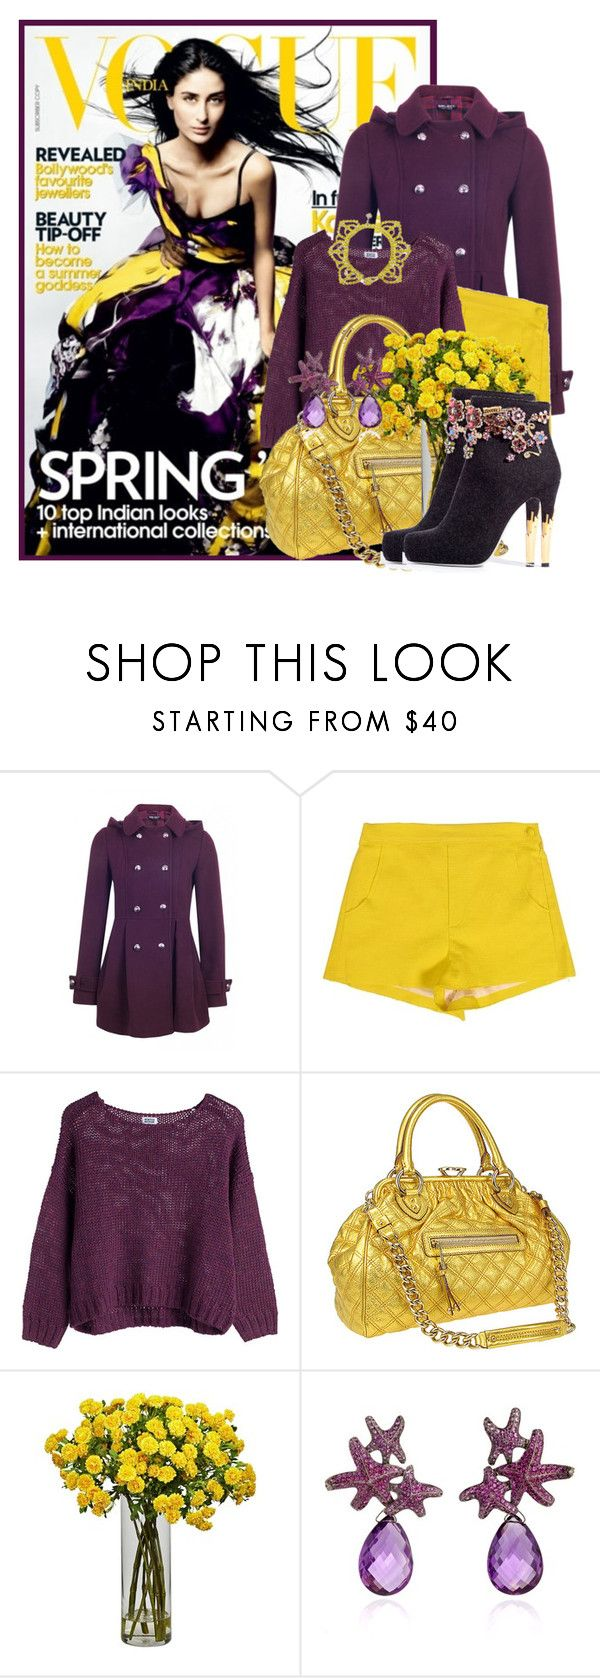 """""""Mustard & Plum"""" by sally92 on Polyvore featuring moda, COVERGIRL, Band of Outsiders, Marc Jacobs, Jason Wu, Lydia Courteille, Toi Et Moi, polyvorecommunity, polyvoreeditorial e polyvorecontest"""